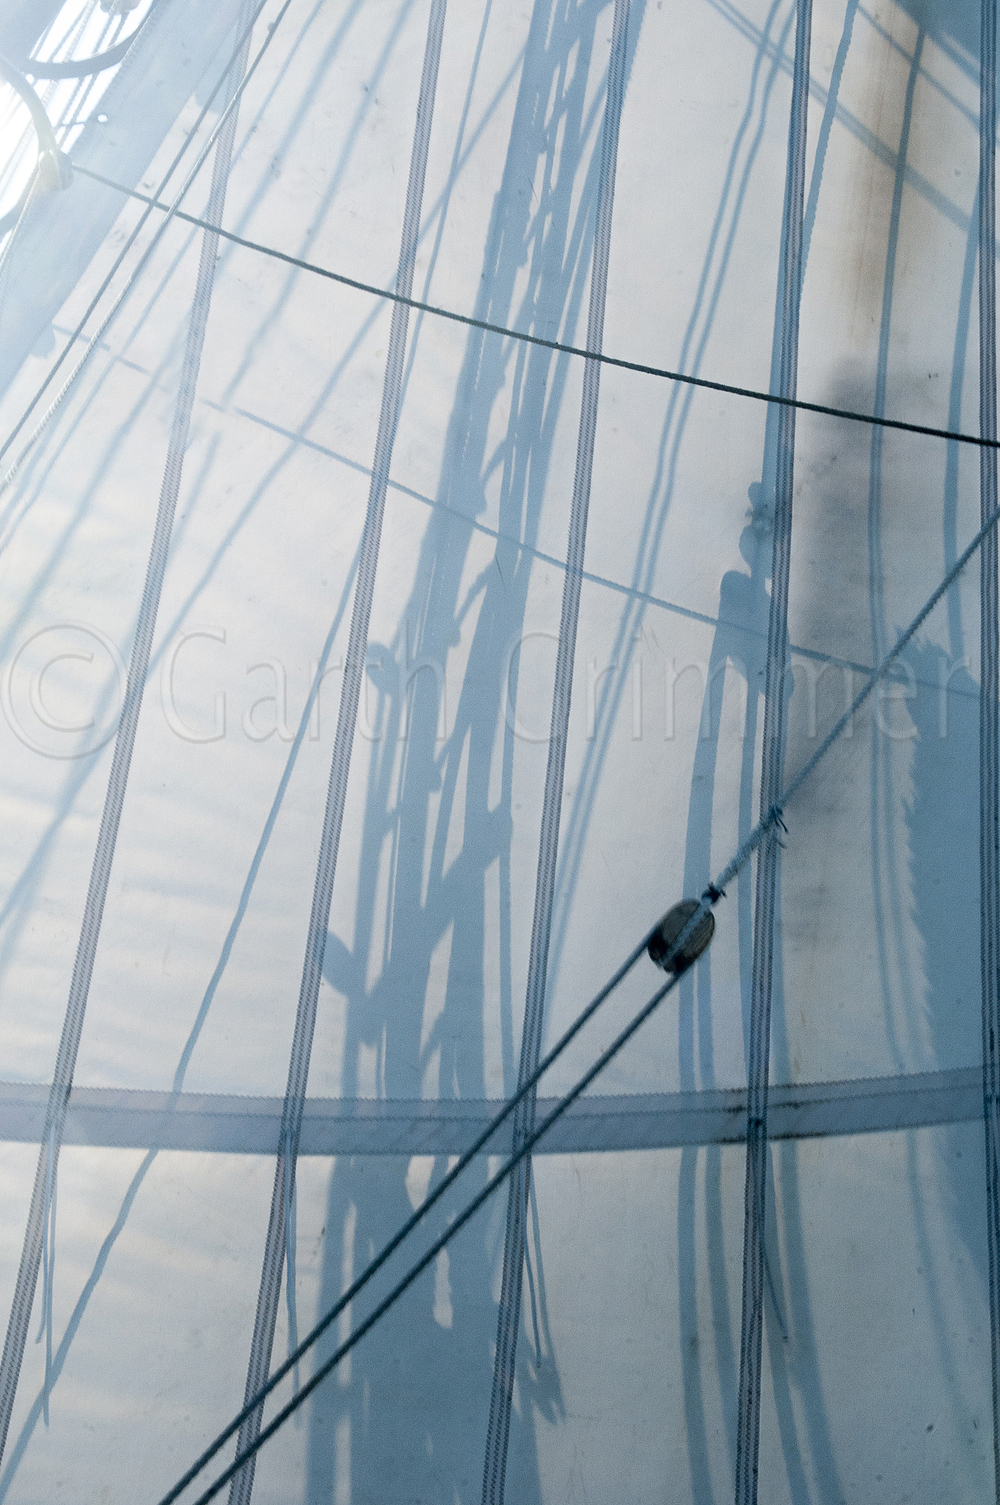 Shadows on the sail of tall ship Lynx